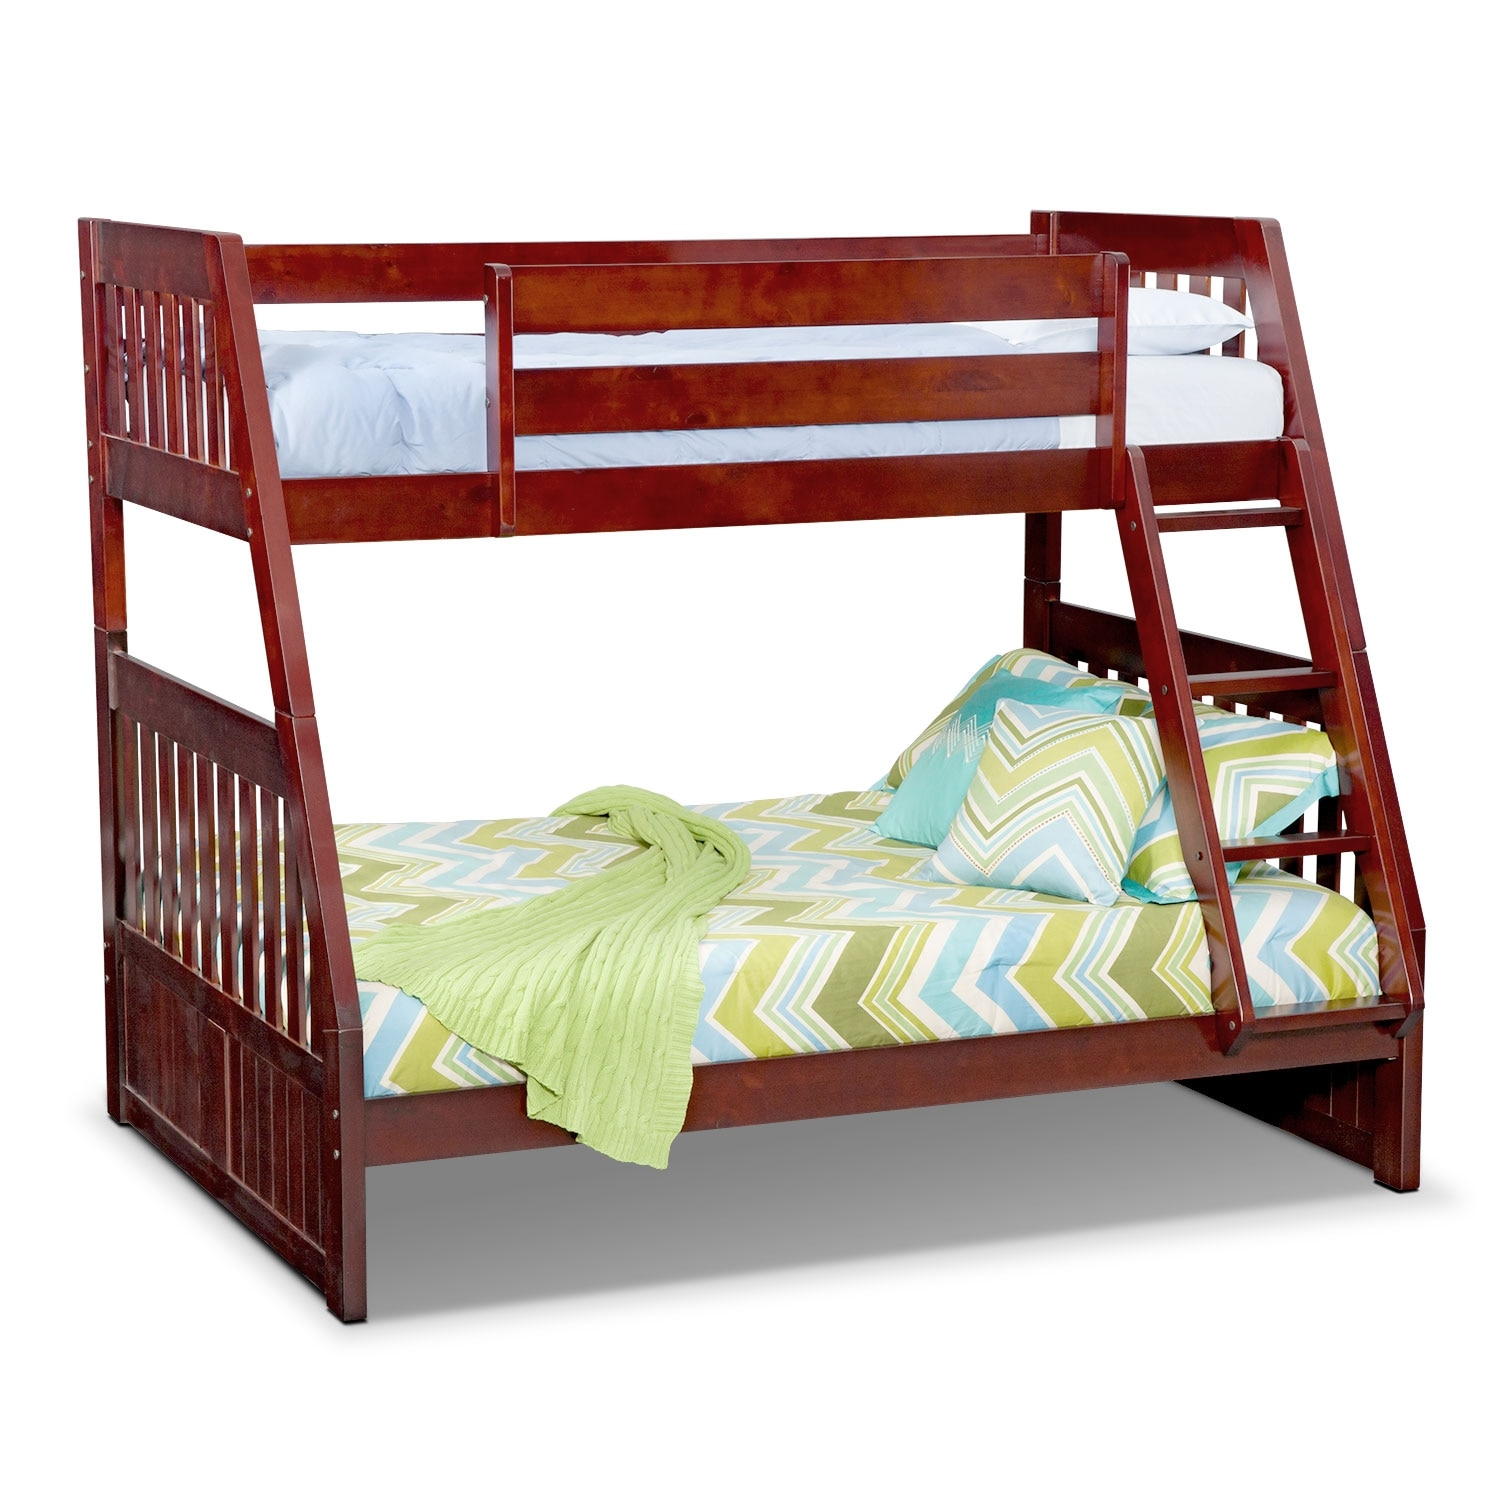 Double Bunks For Sale The Ranger Bunk Bed Collection Merlot American Signature Furniture